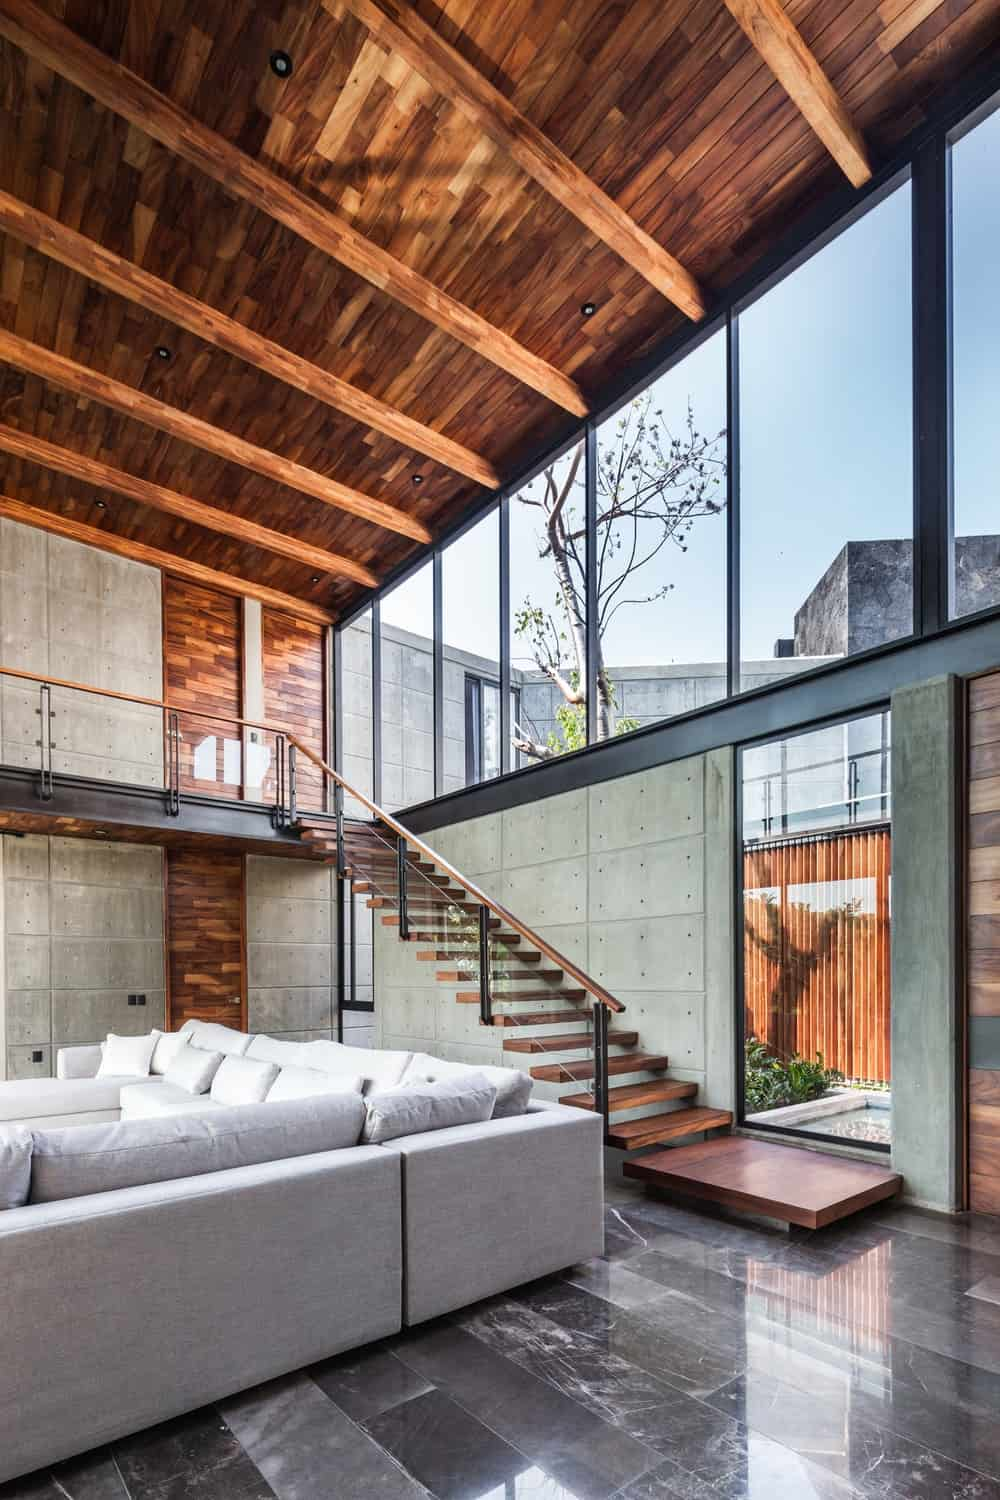 Living room in the Casa Kaleth designed by Di Frenna Arquitectos.